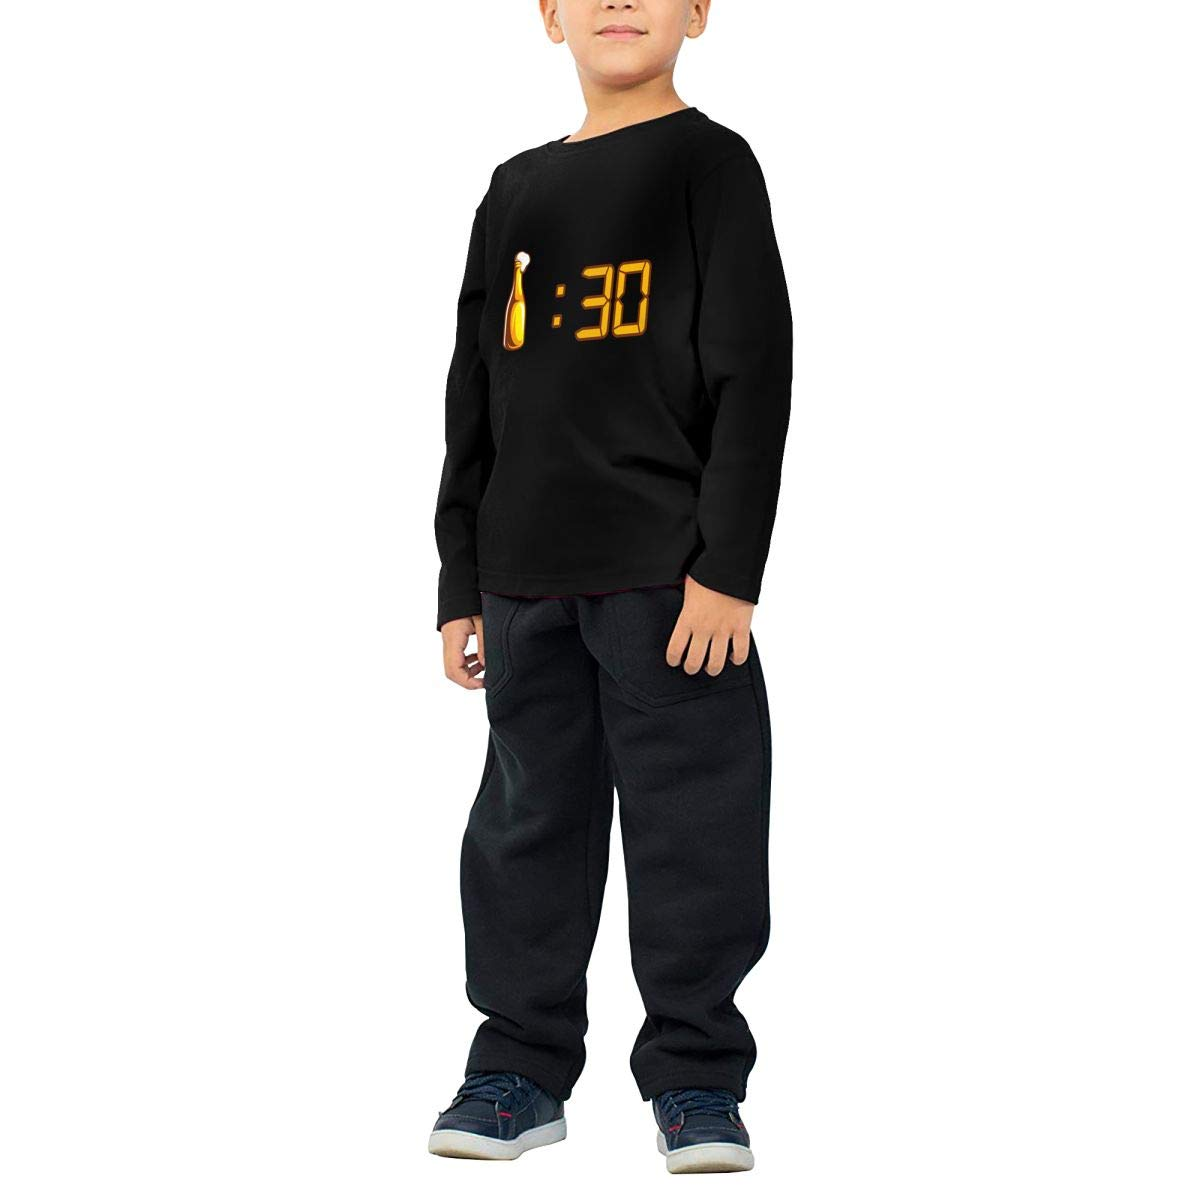 Drinking Beer Childrens Long Sleeve T-Shirt Boys Cotton Tee Tops